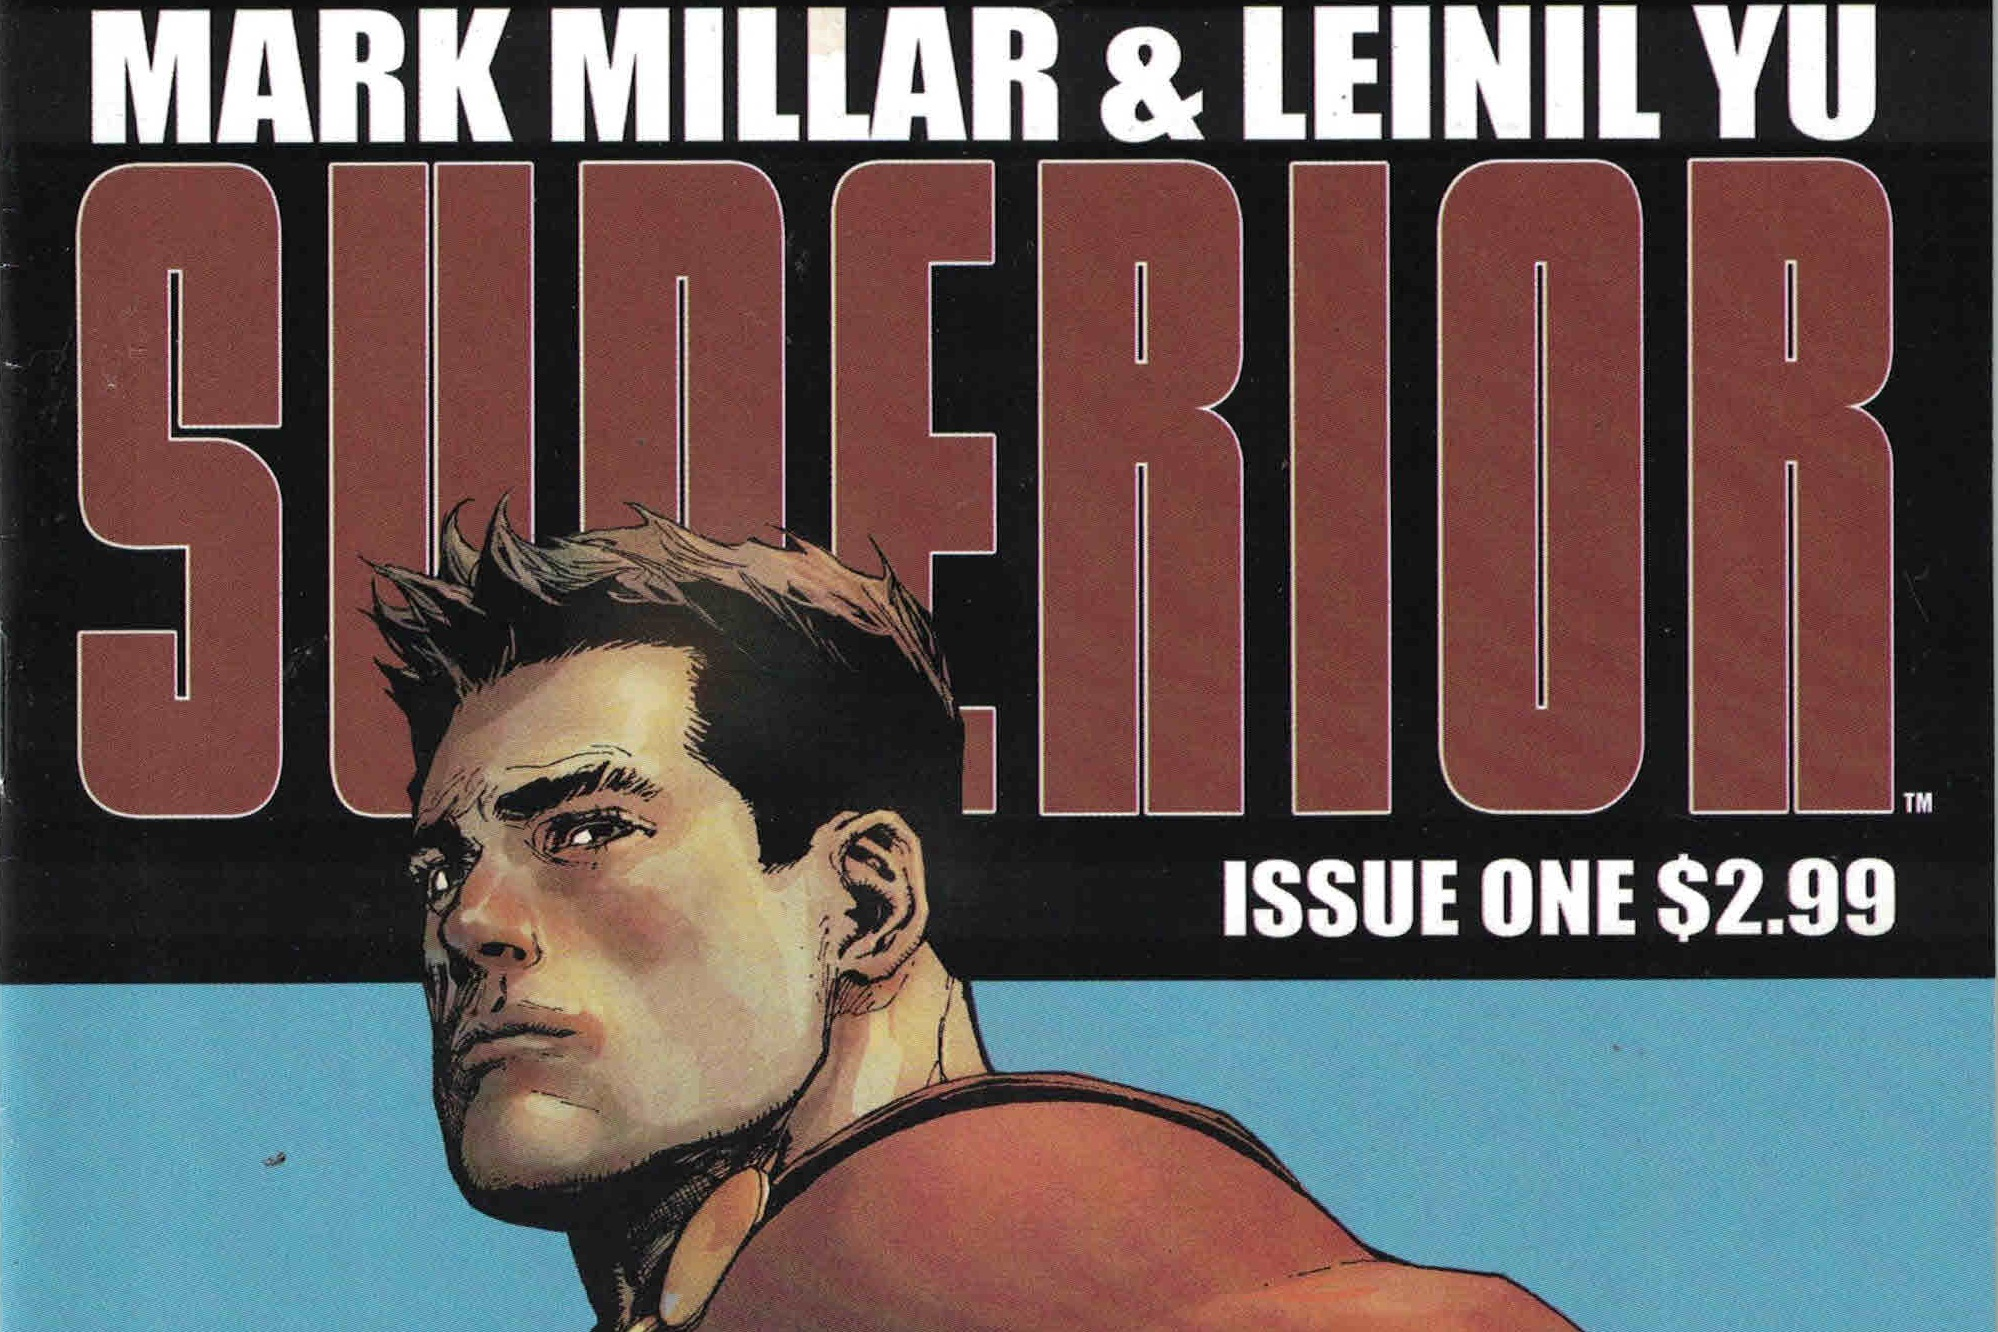 Mark Millar's Moral Superior-ity - A Review of Superior (story by Mark Millar, art by Leinil Yu)   Written by O'Brian Gunn